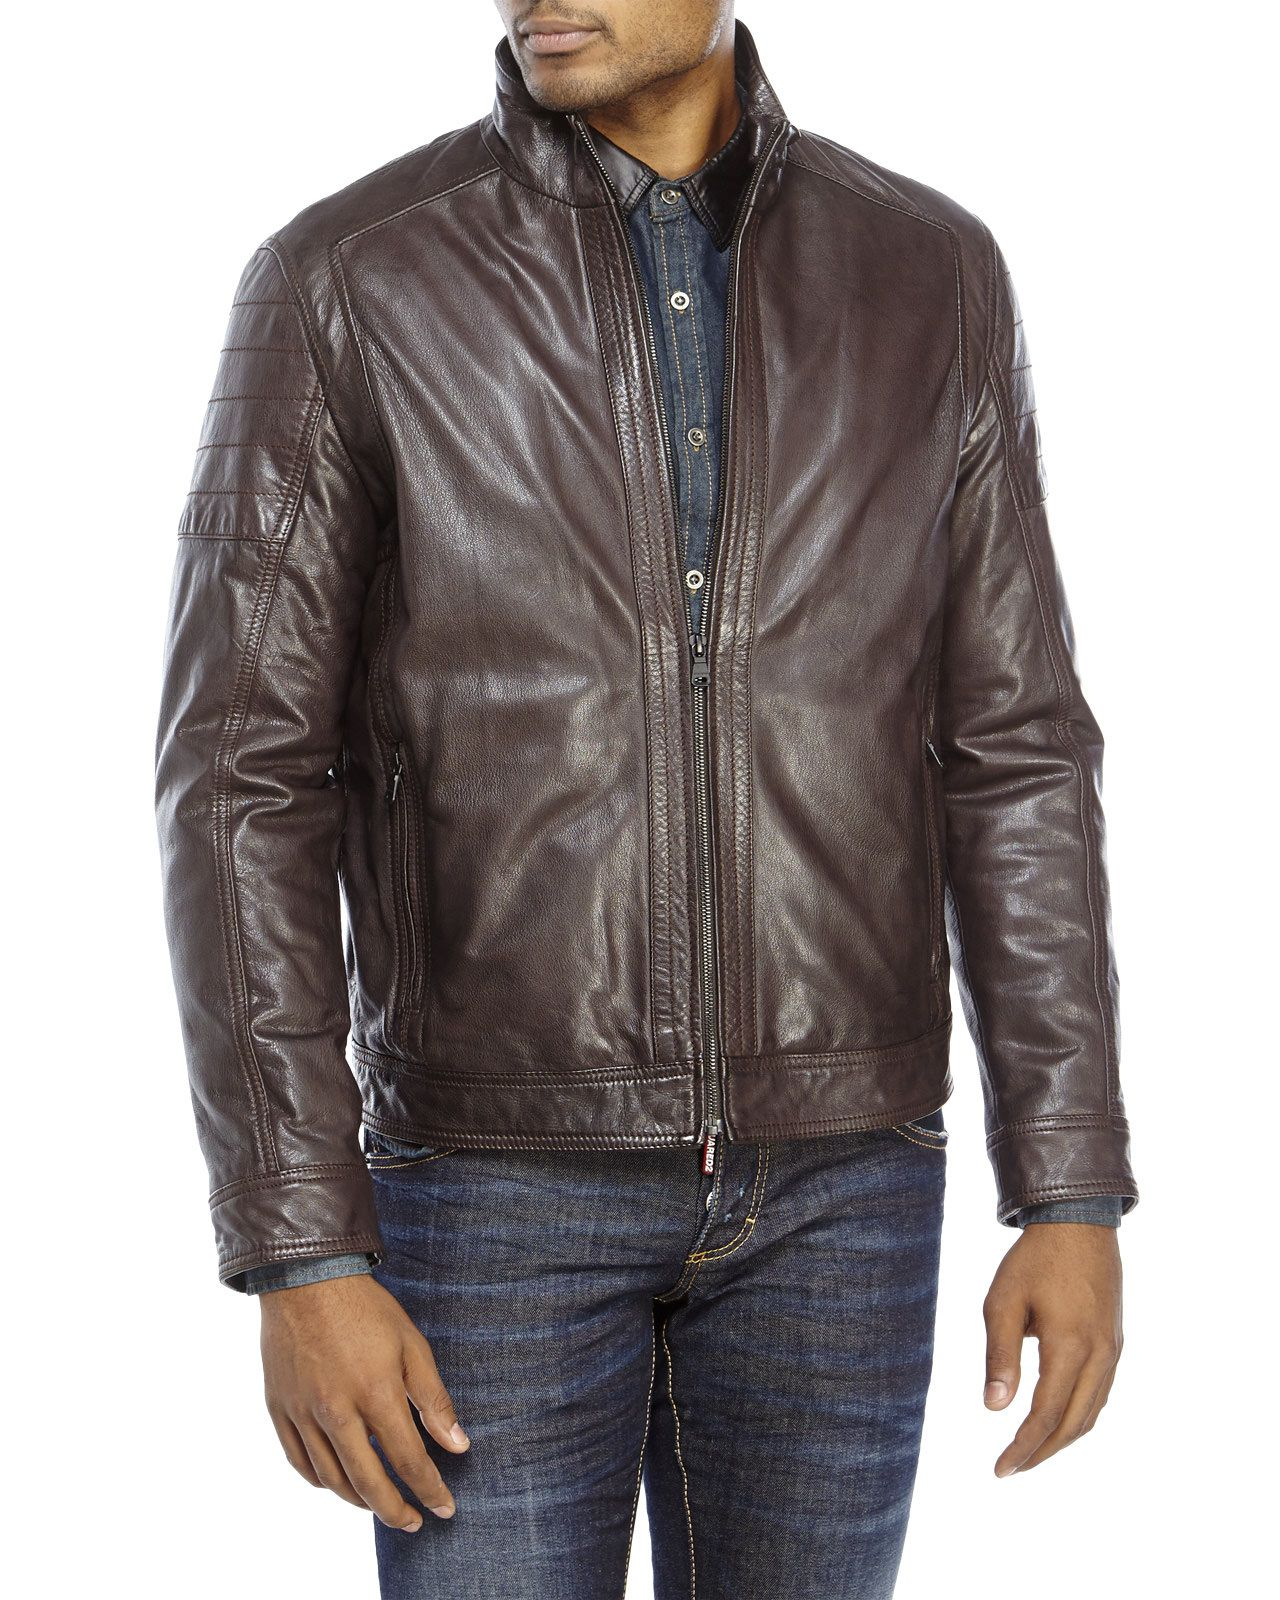 BOSS HUGO BOSS Leather Jacket Leather jacket shopping